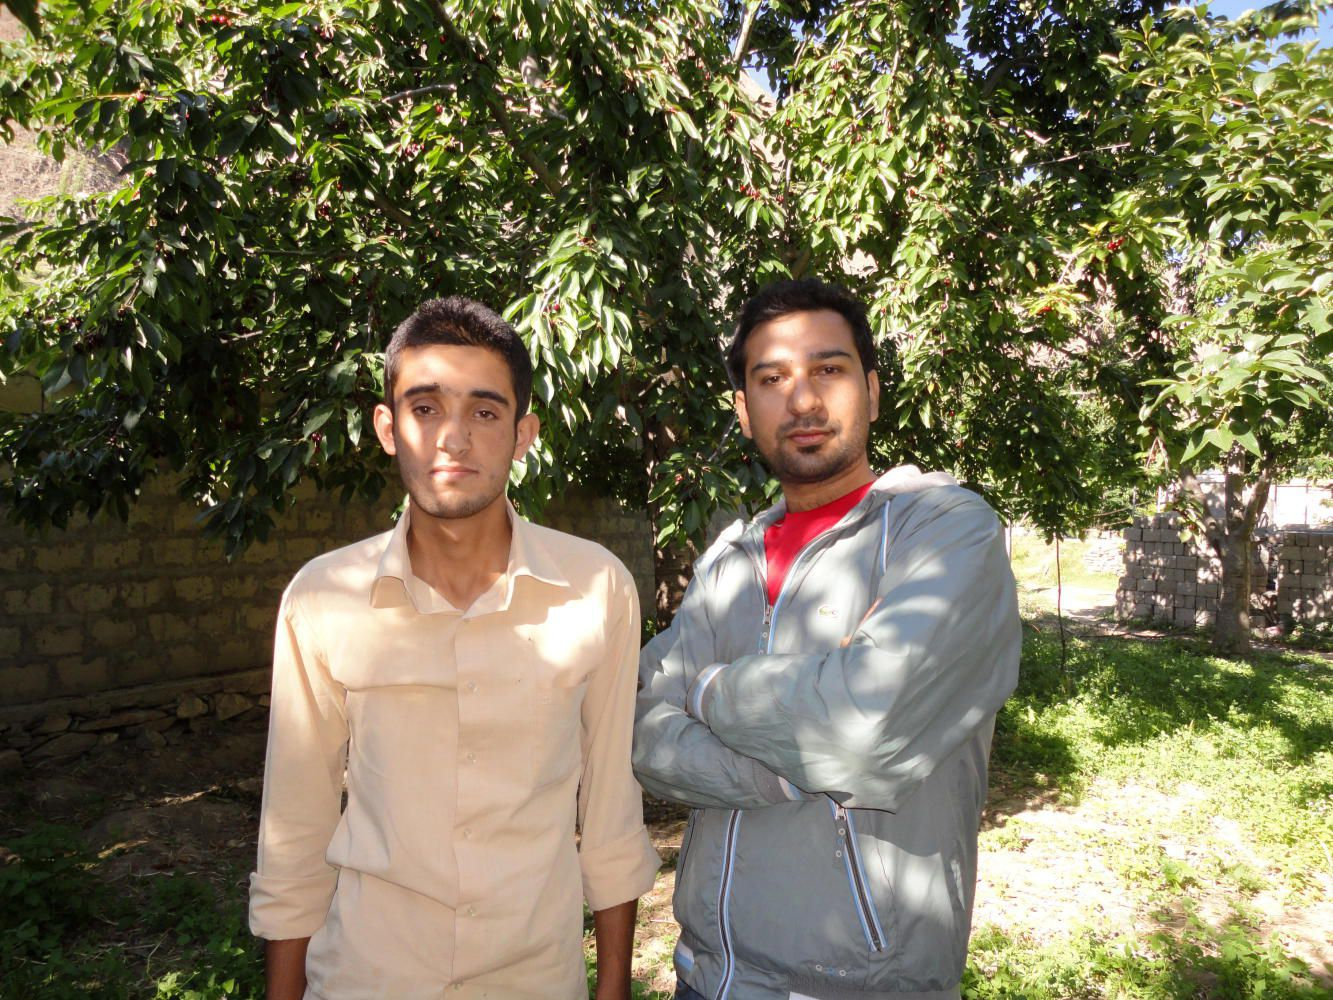 Mr. Abbas invited us to his garden, Gulmit, Nagar